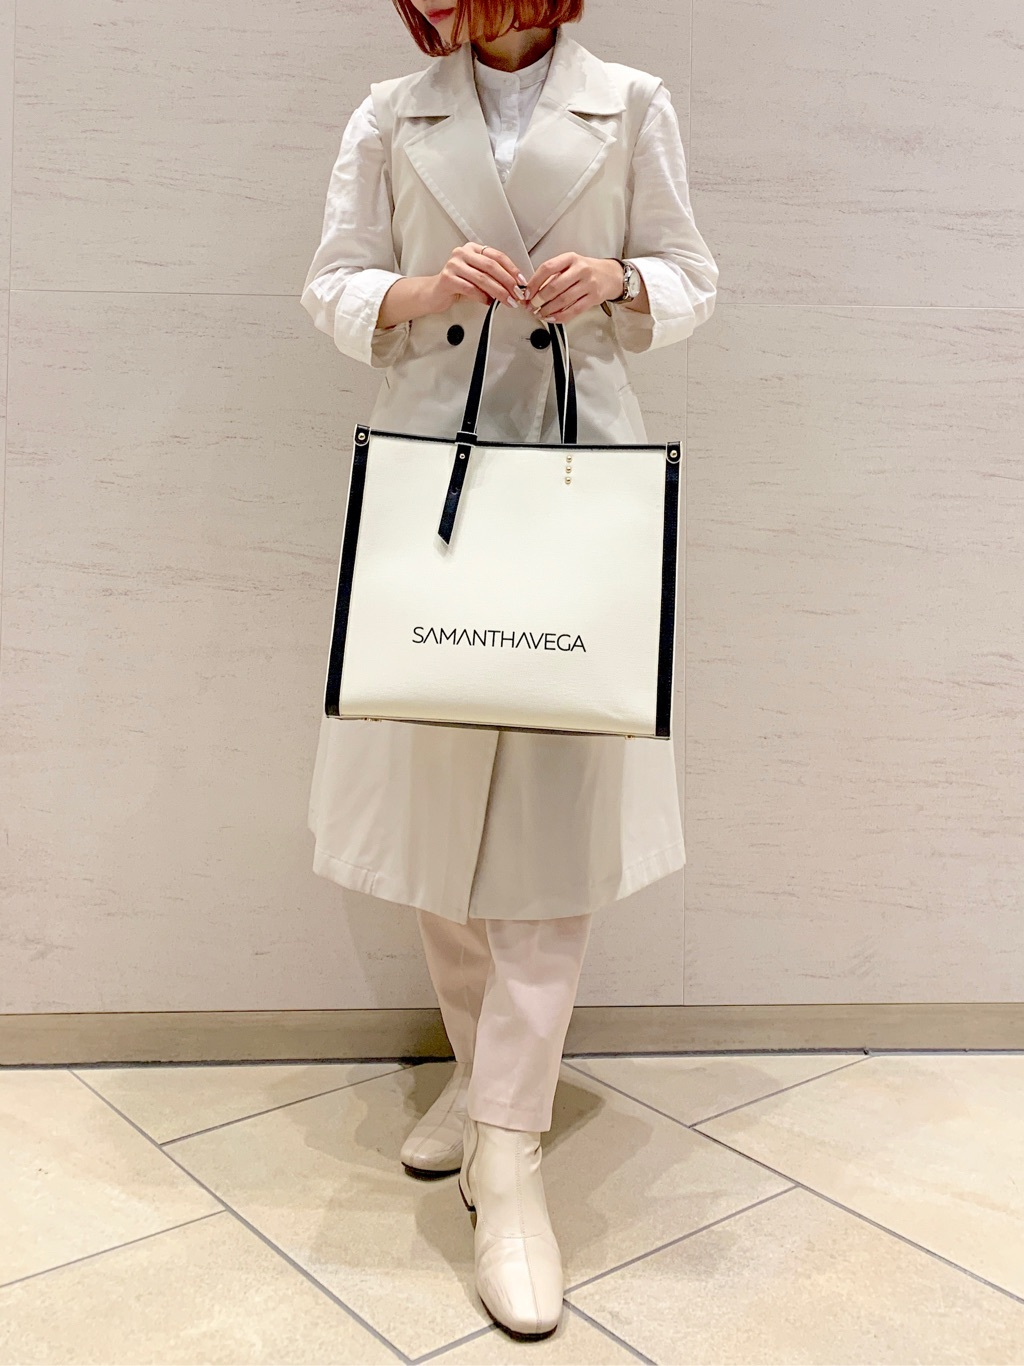 SAMANTHAVEGA Celebrity 近鉄パッセ店 Mayui